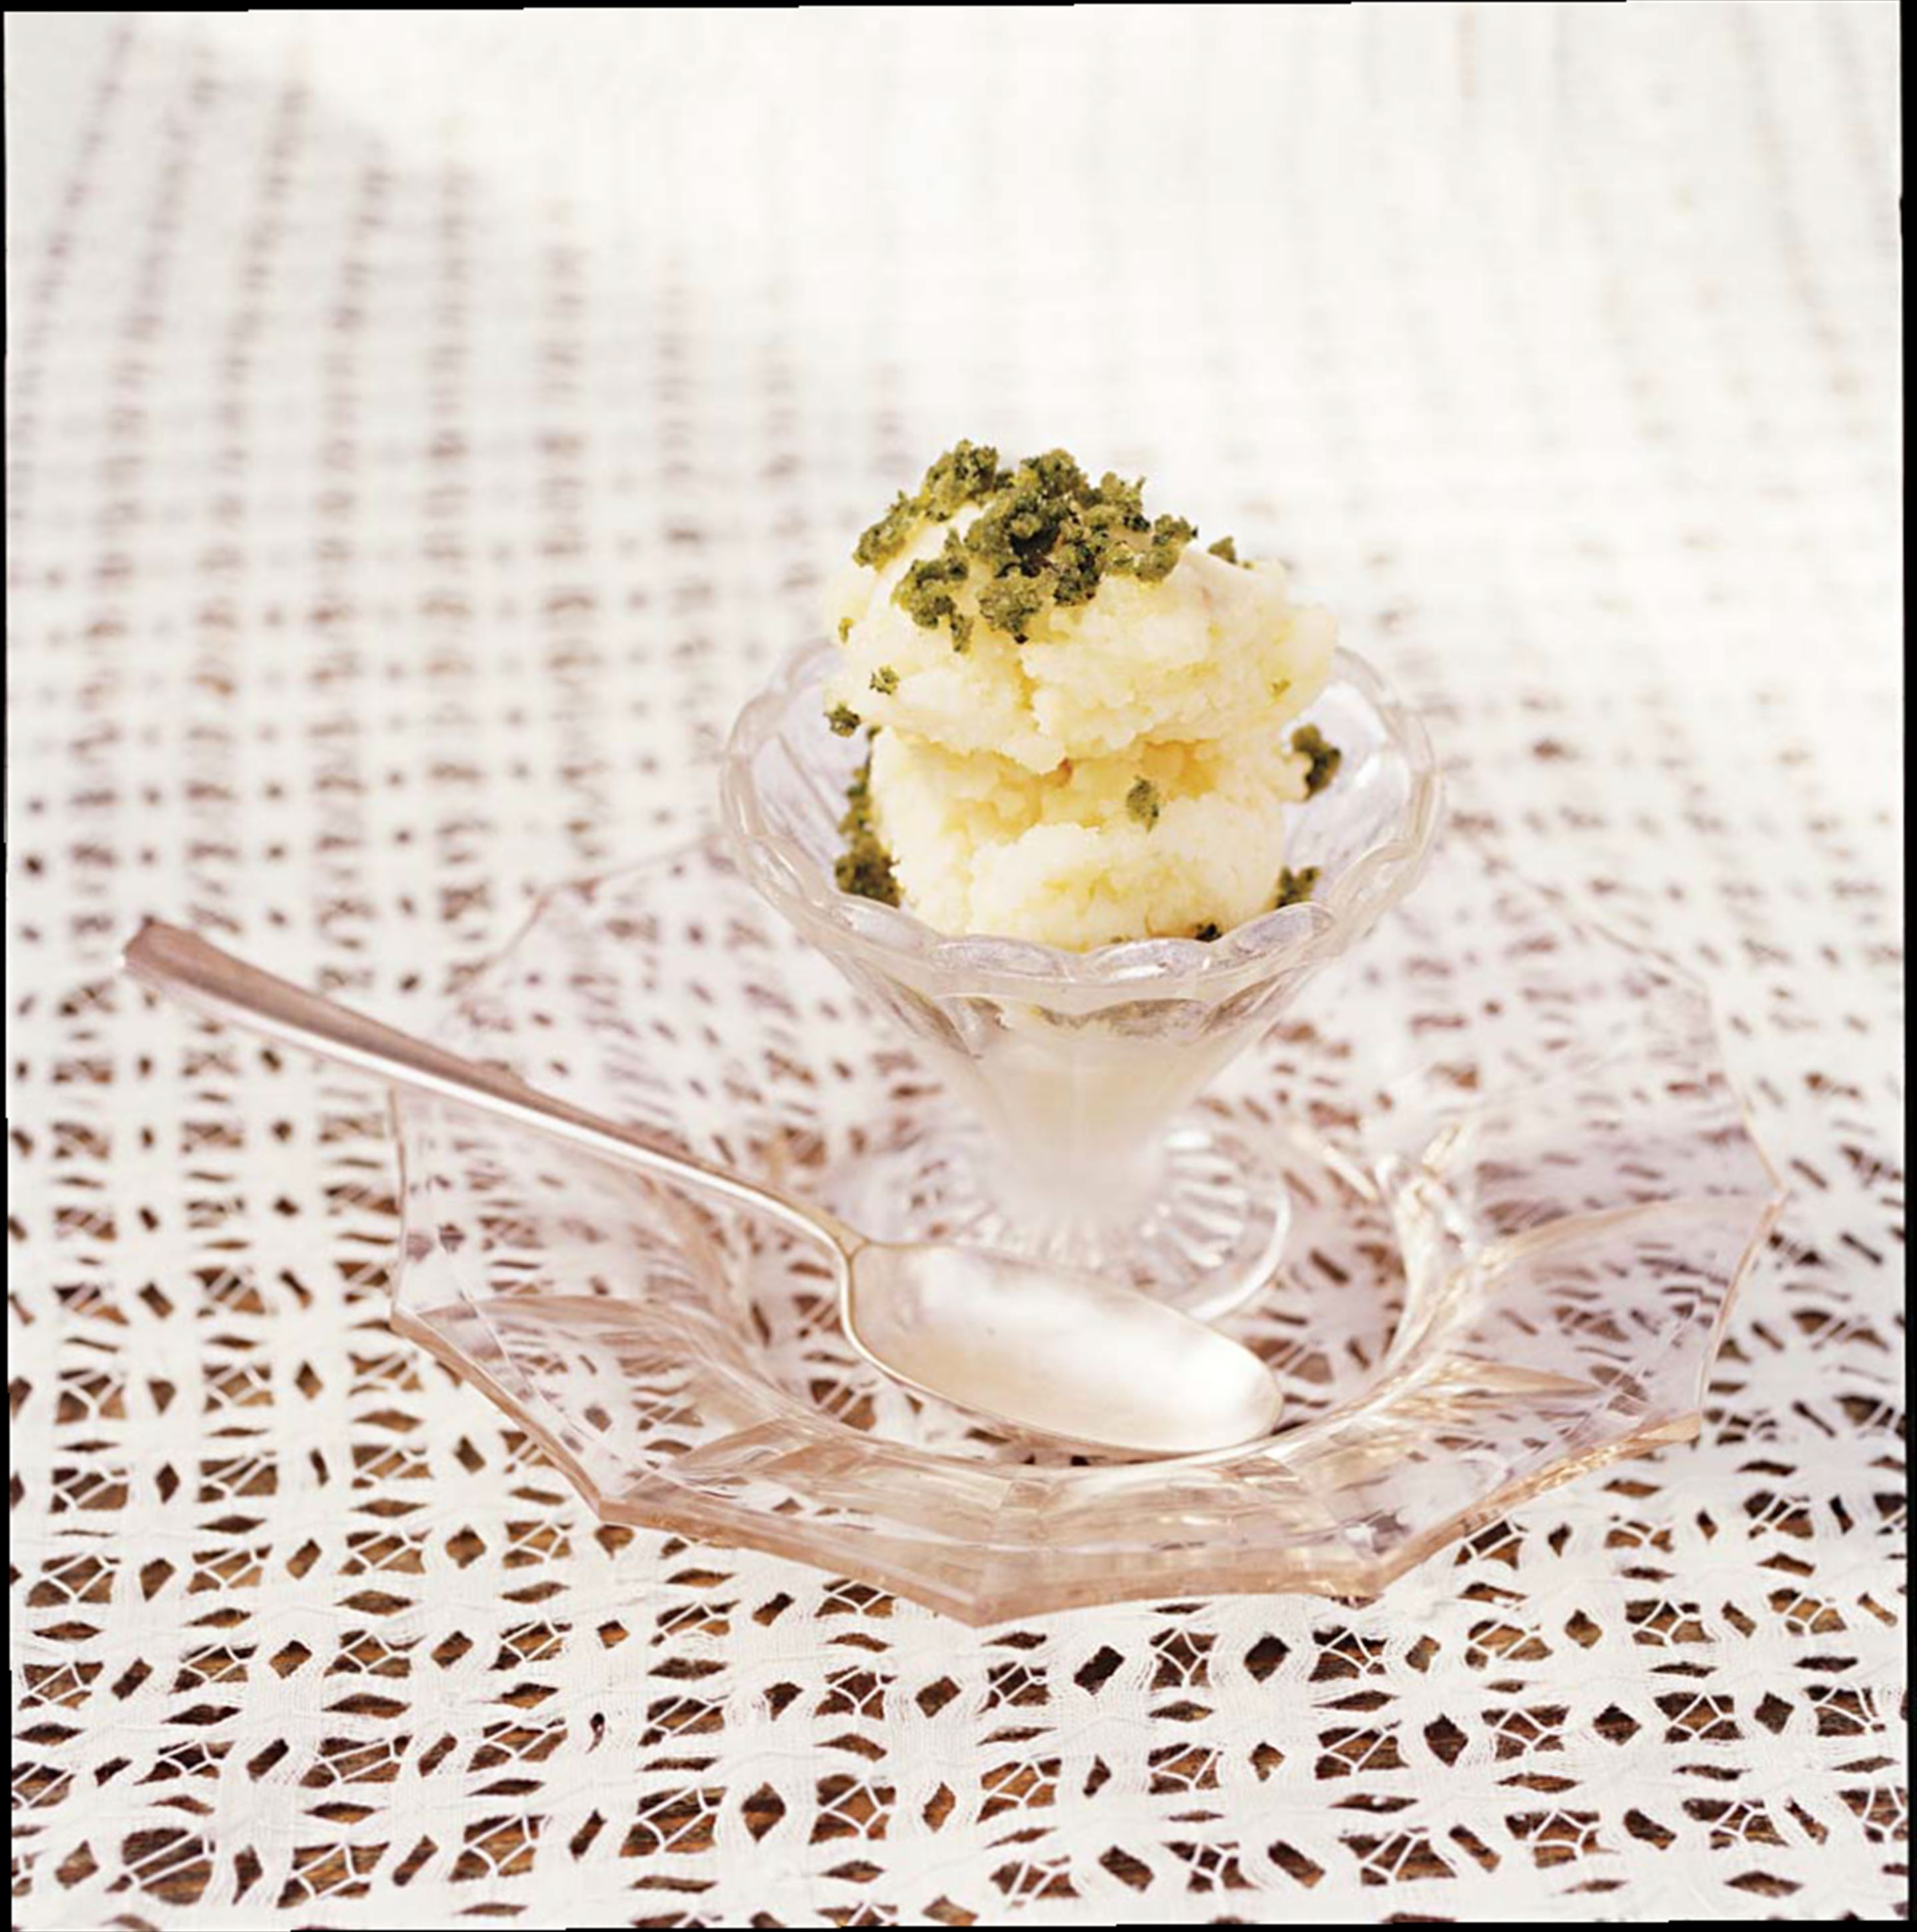 Lemon sorbet with crushed mint